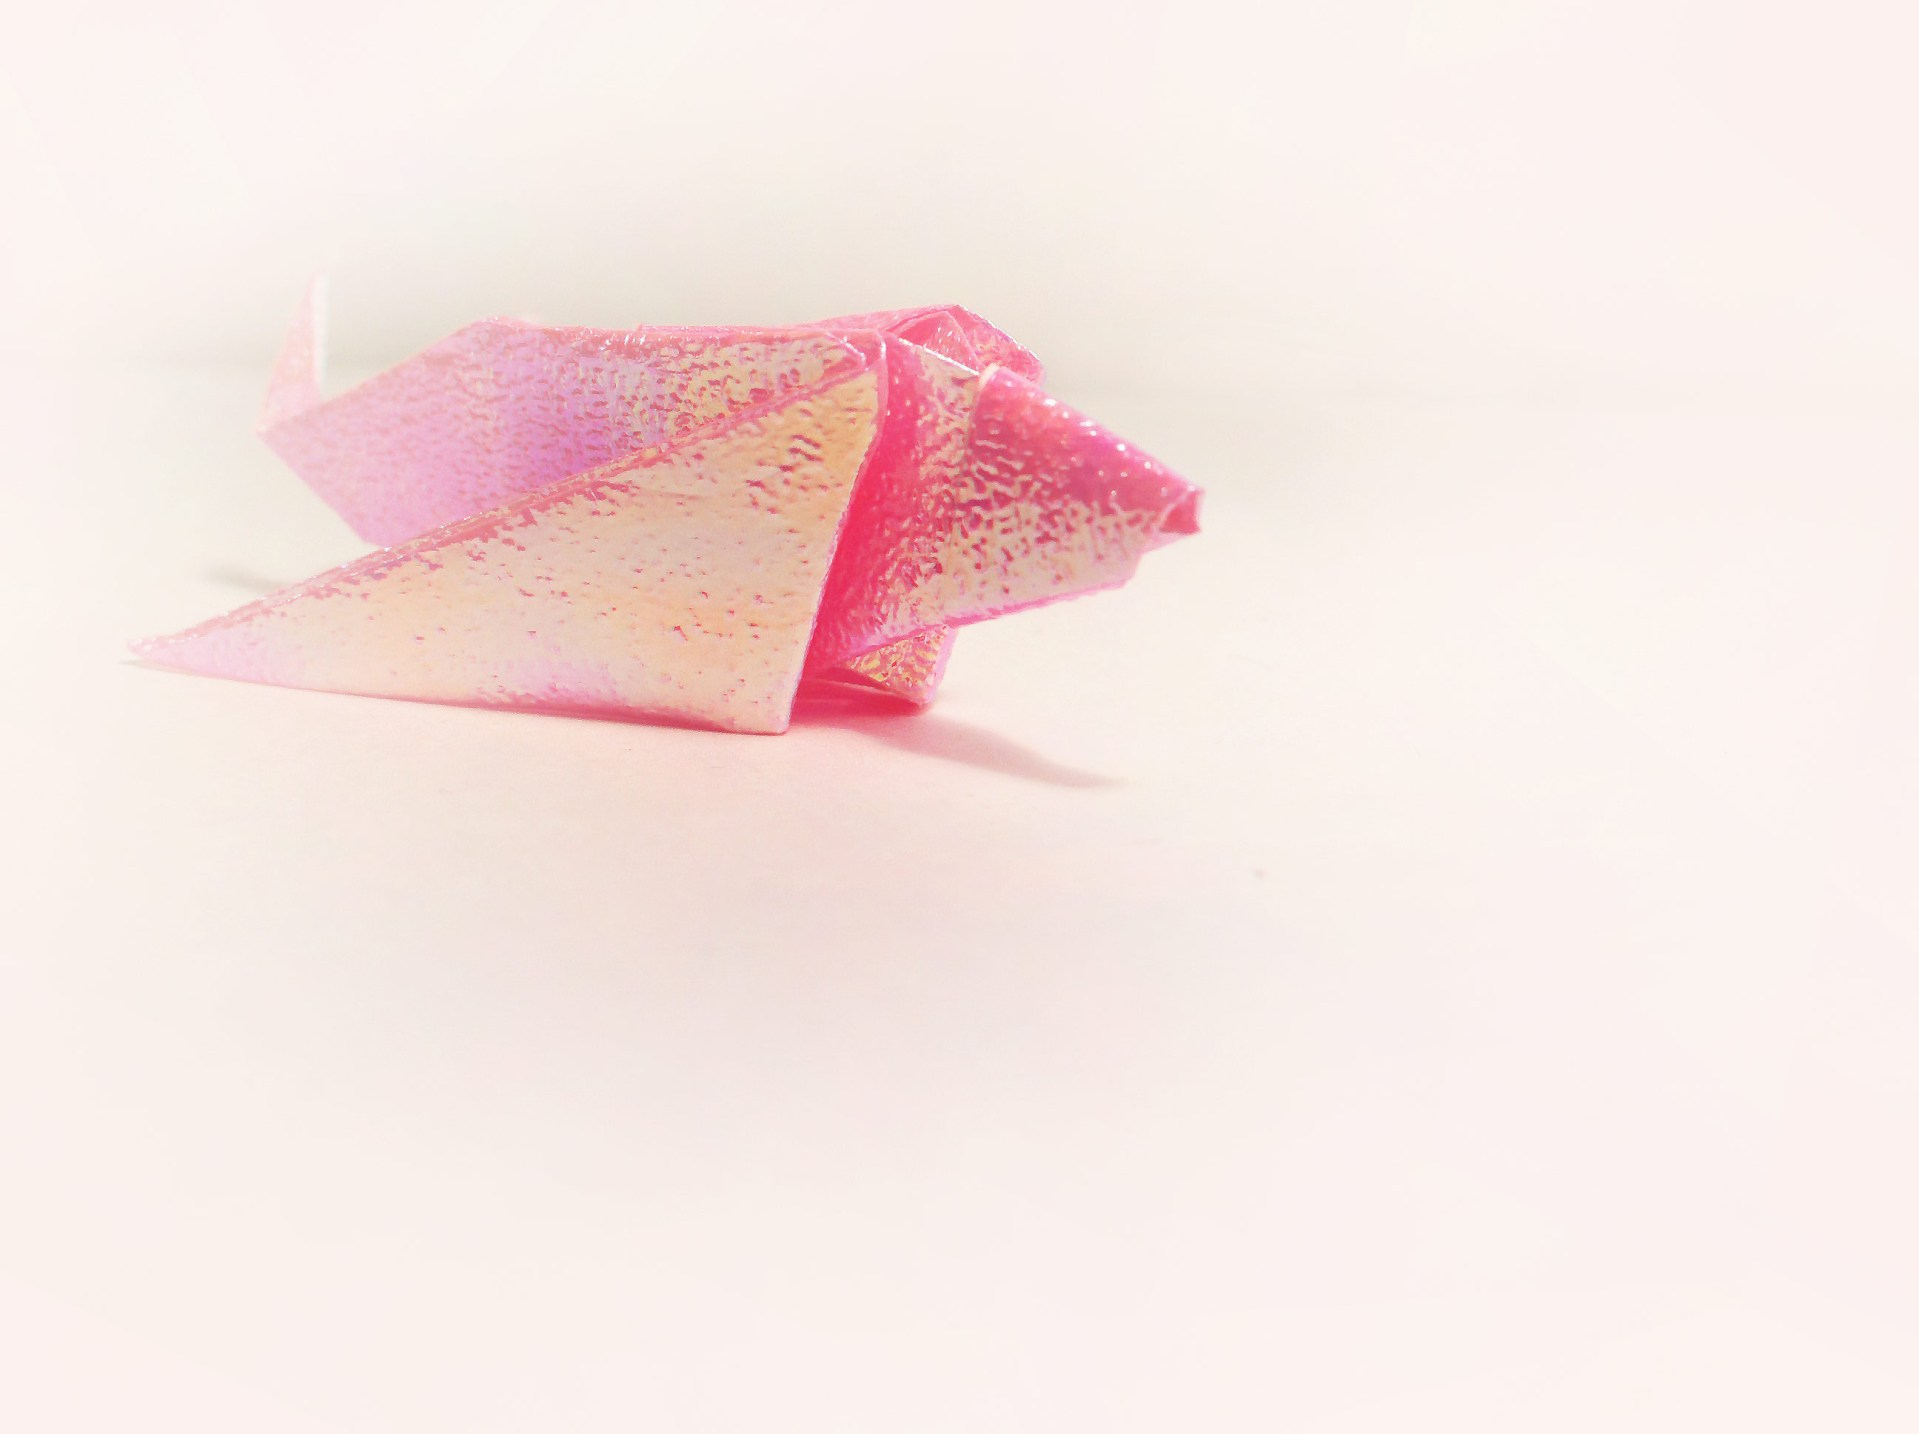 Pink Iridescent Origami Fish by Carrie Gates